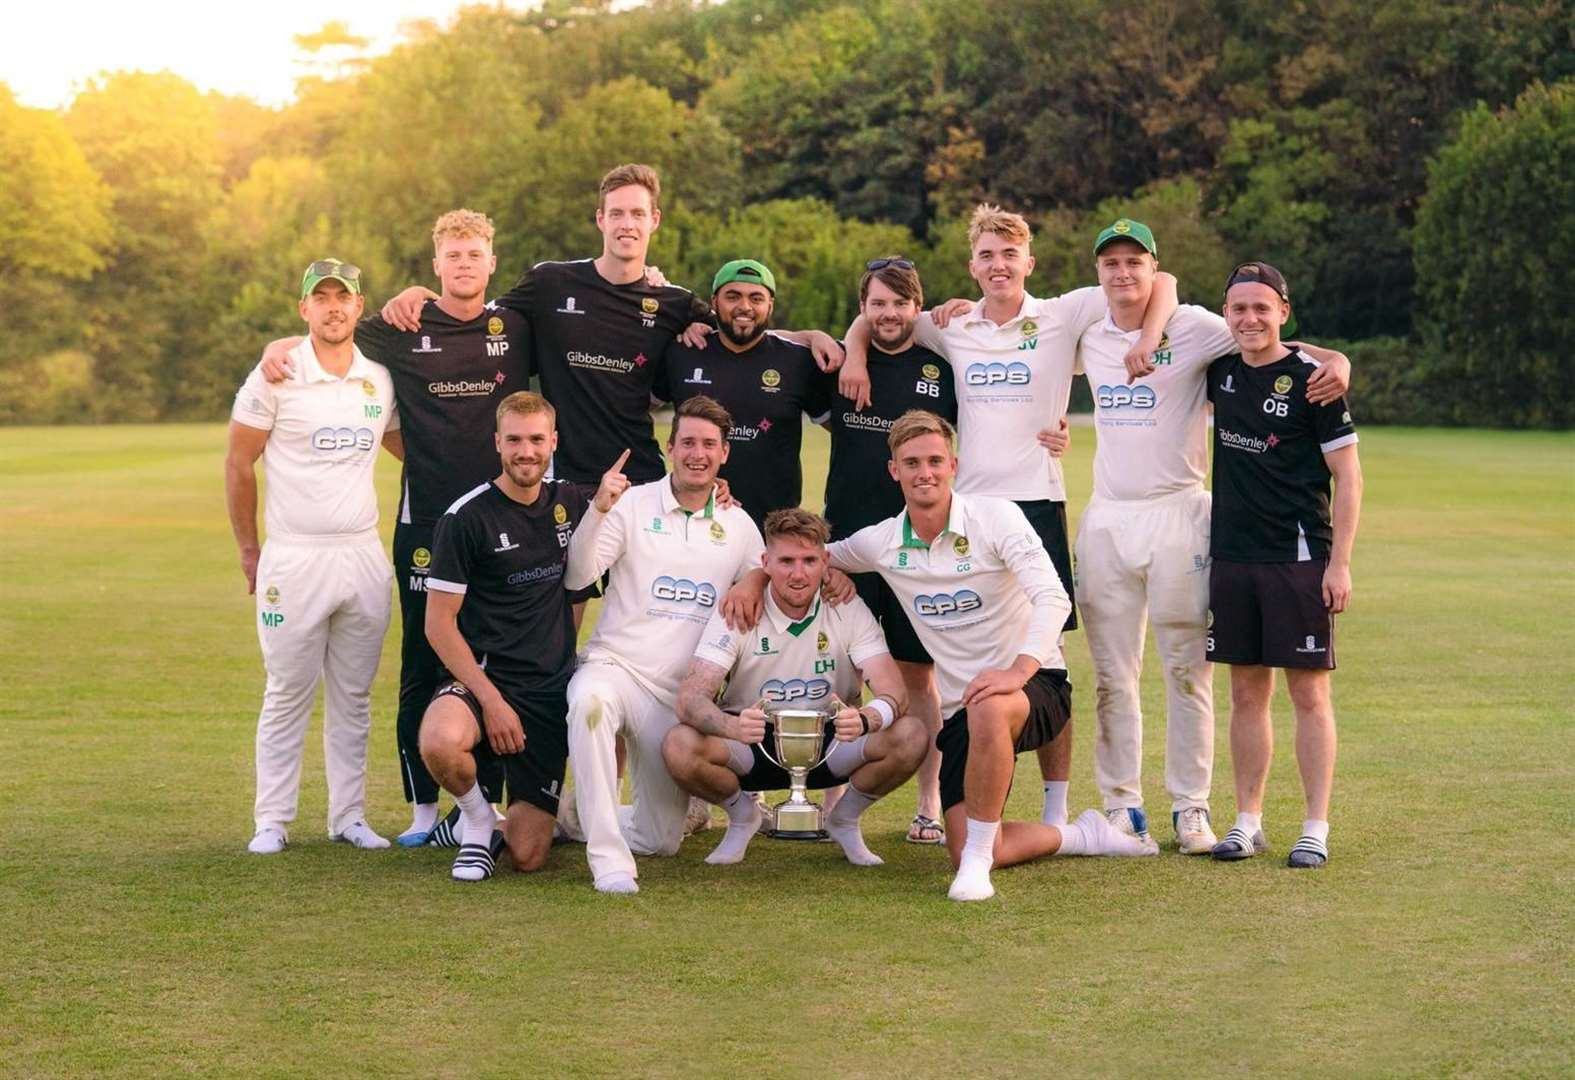 Dan Heath lauds efforts of Sawston & Babraham's Cambs & Hunts Premier League, Division One history-makers